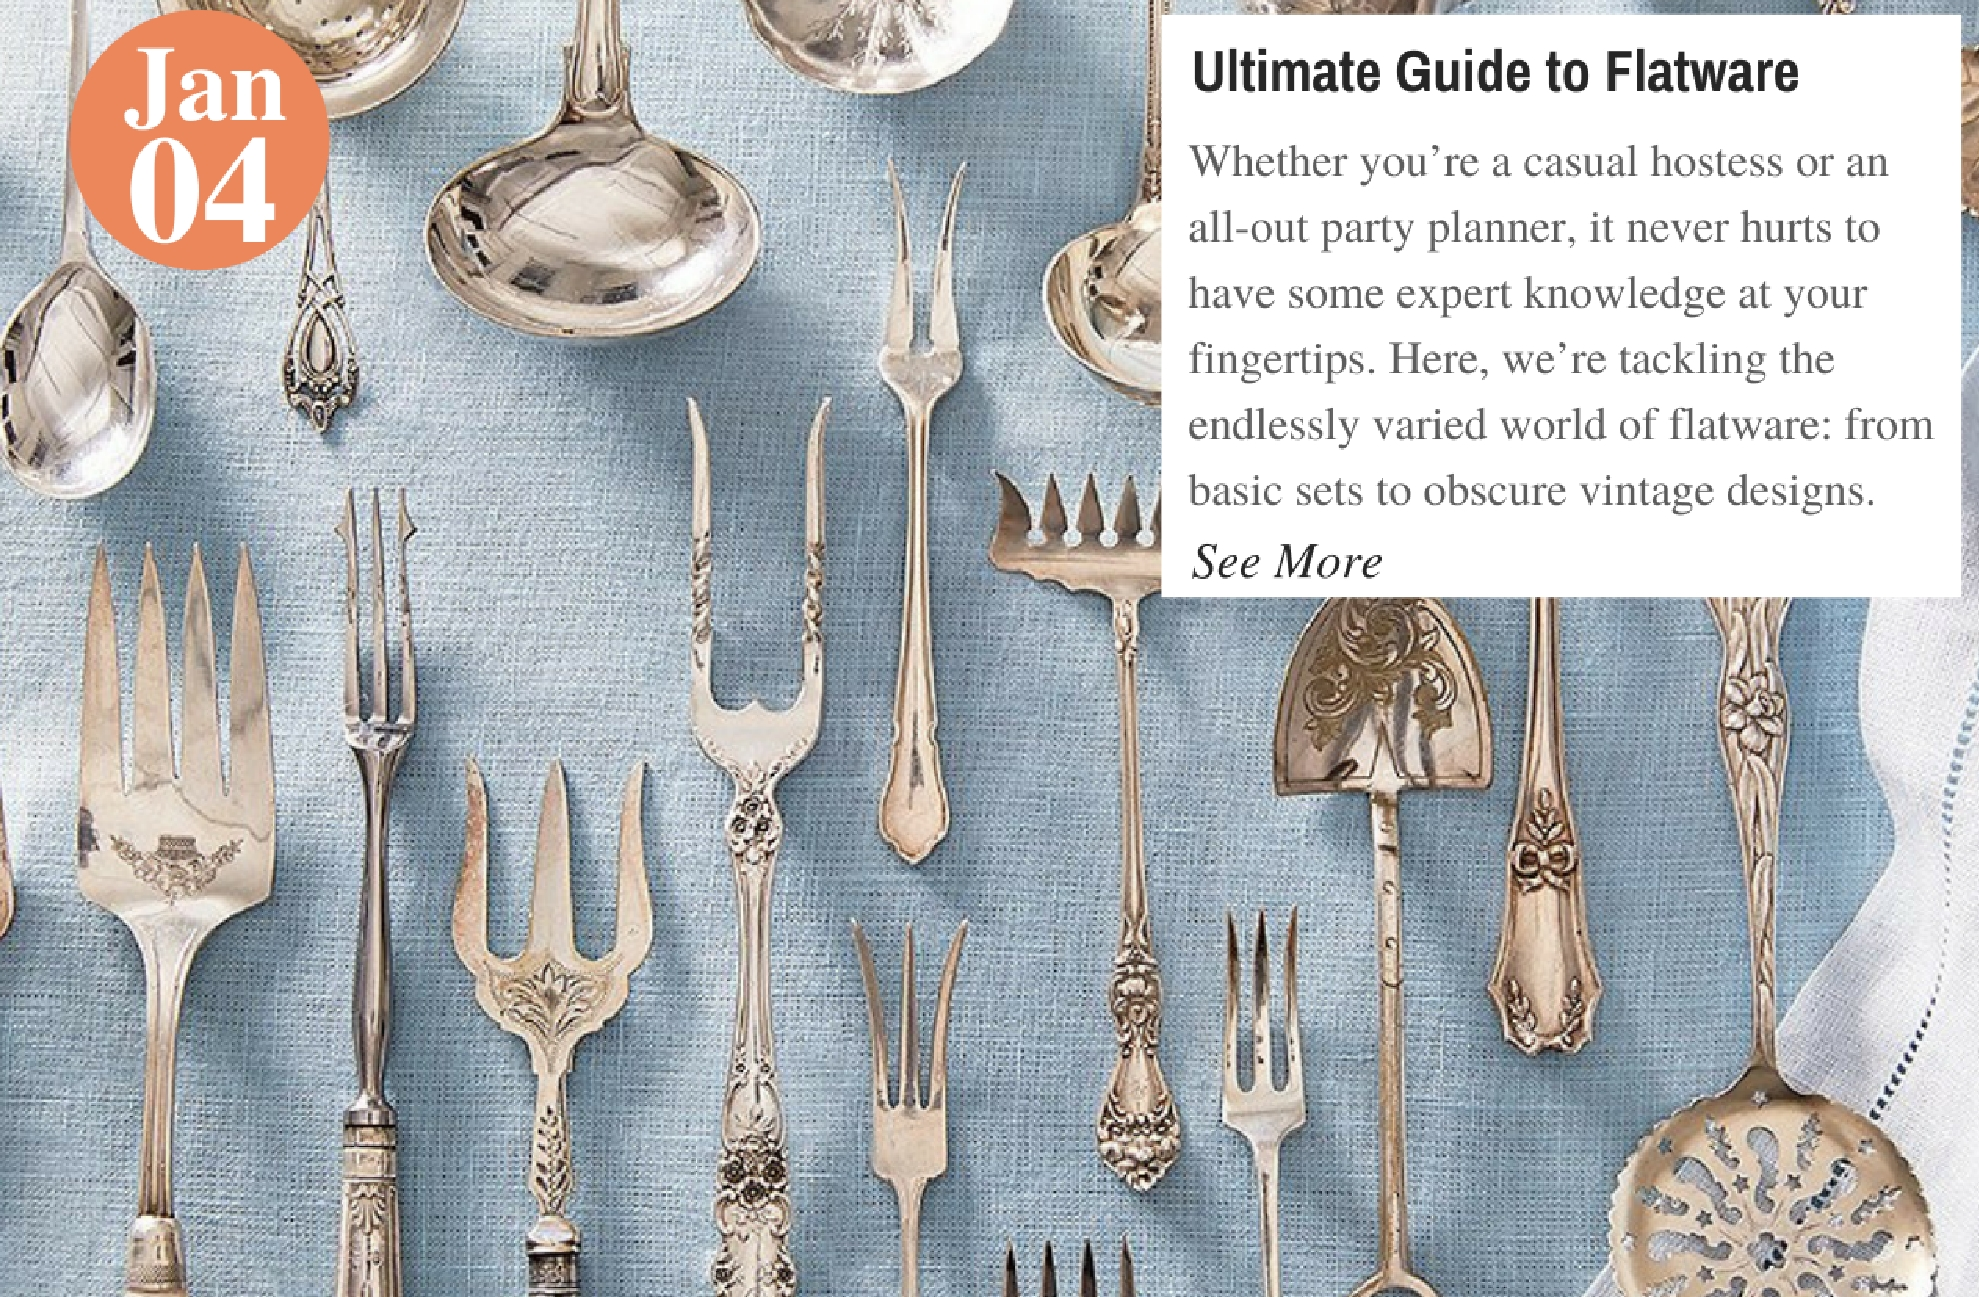 Ultimate Guide to Flatware